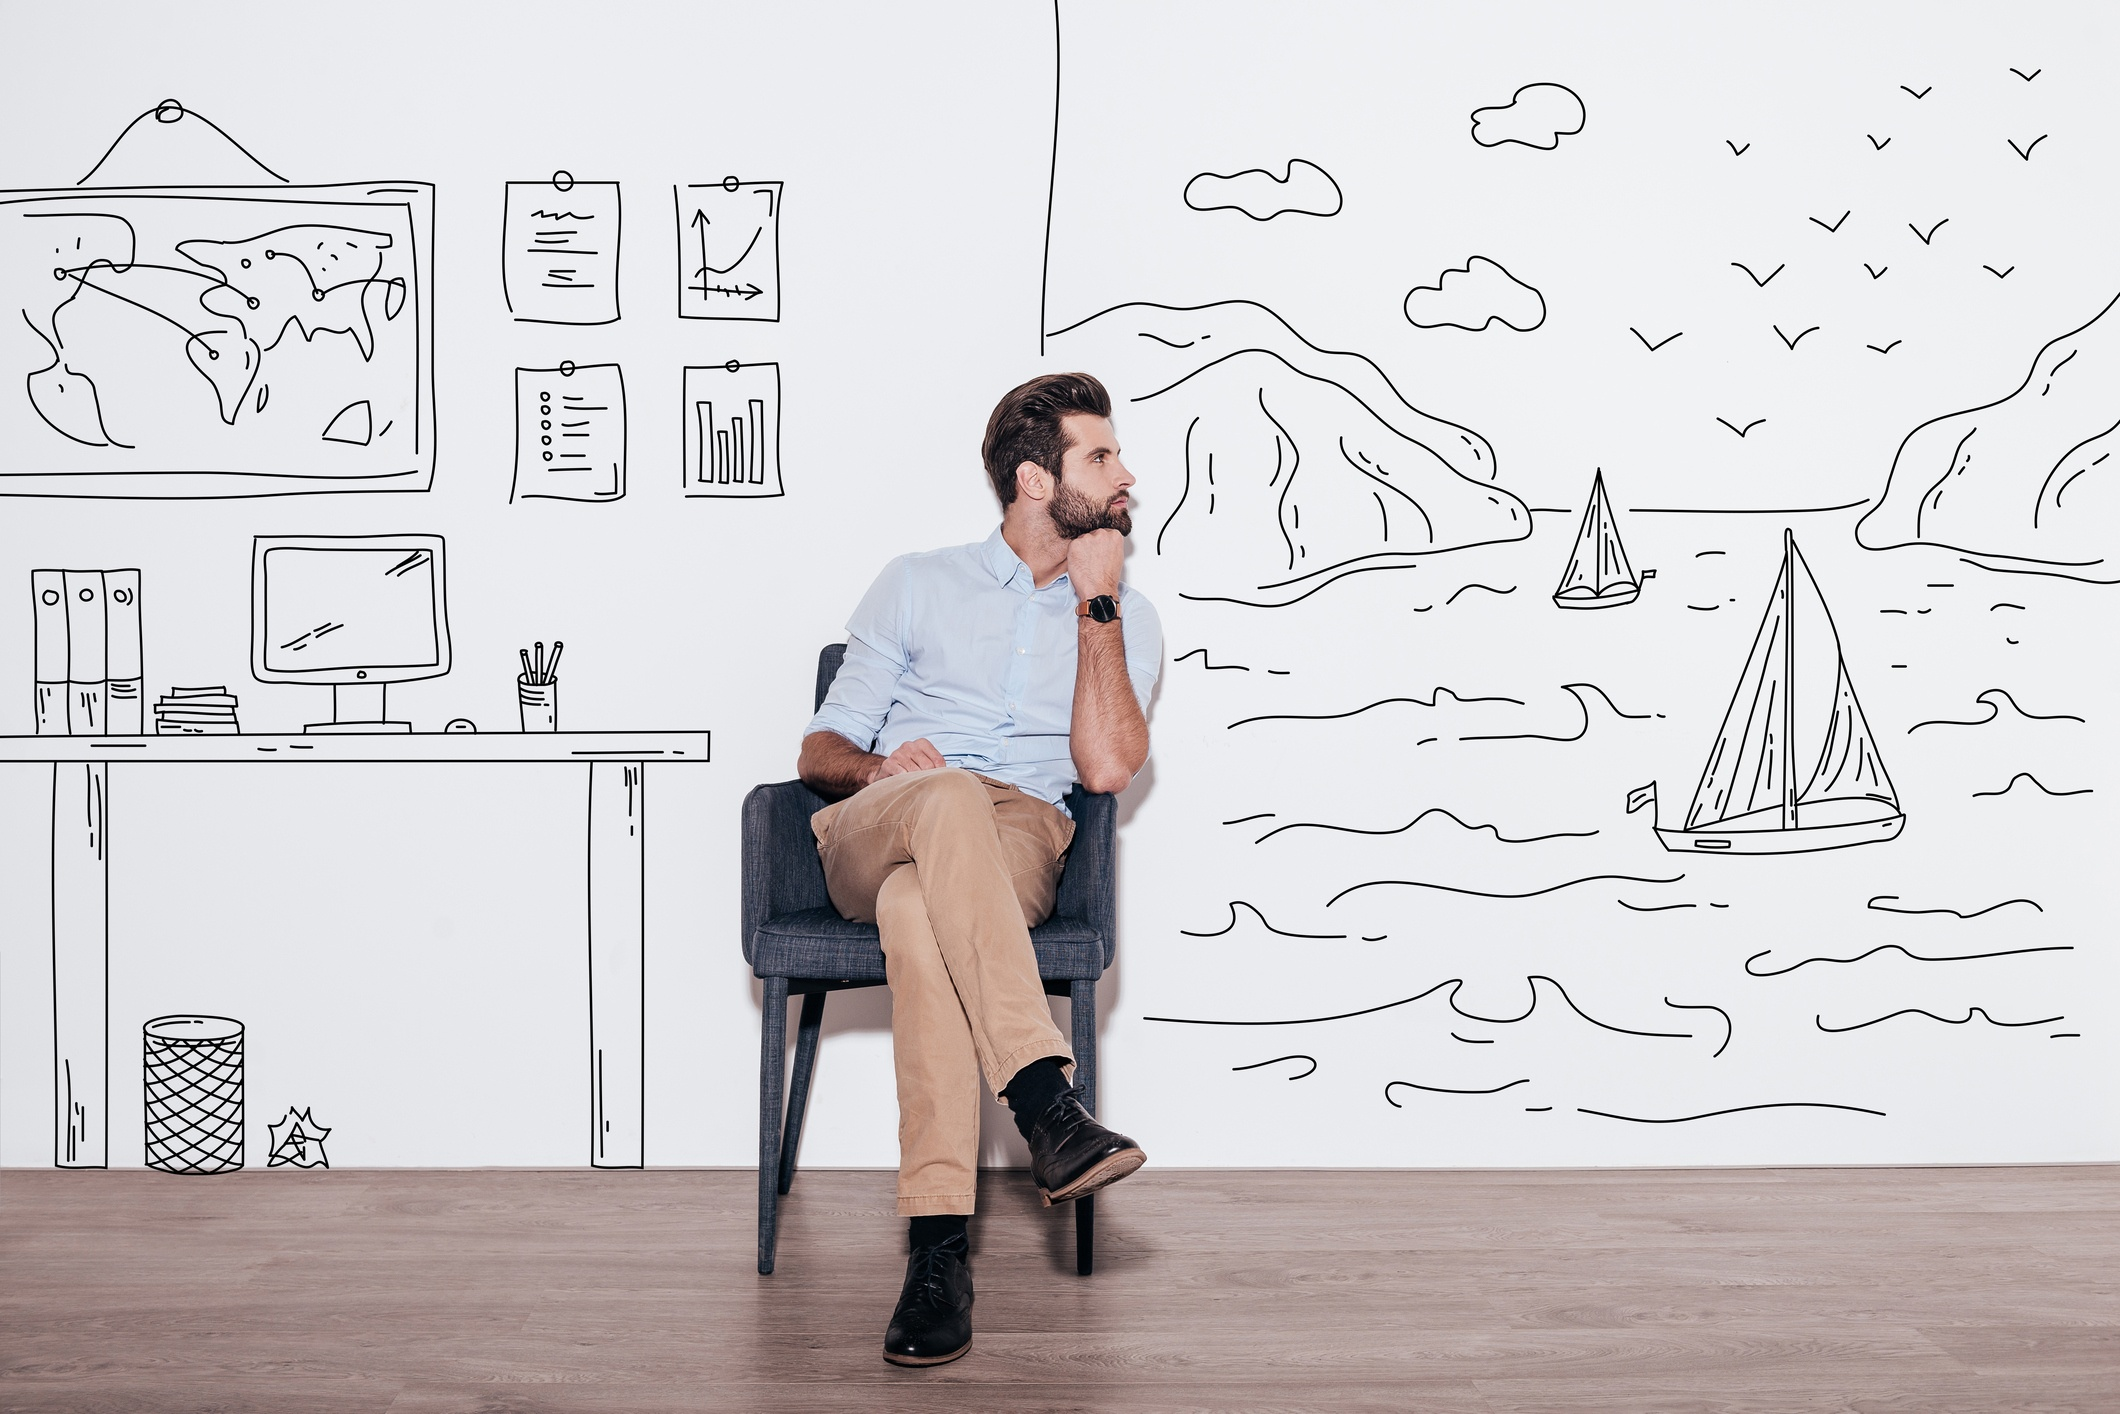 7 issues that keep businesses from reaching the next level